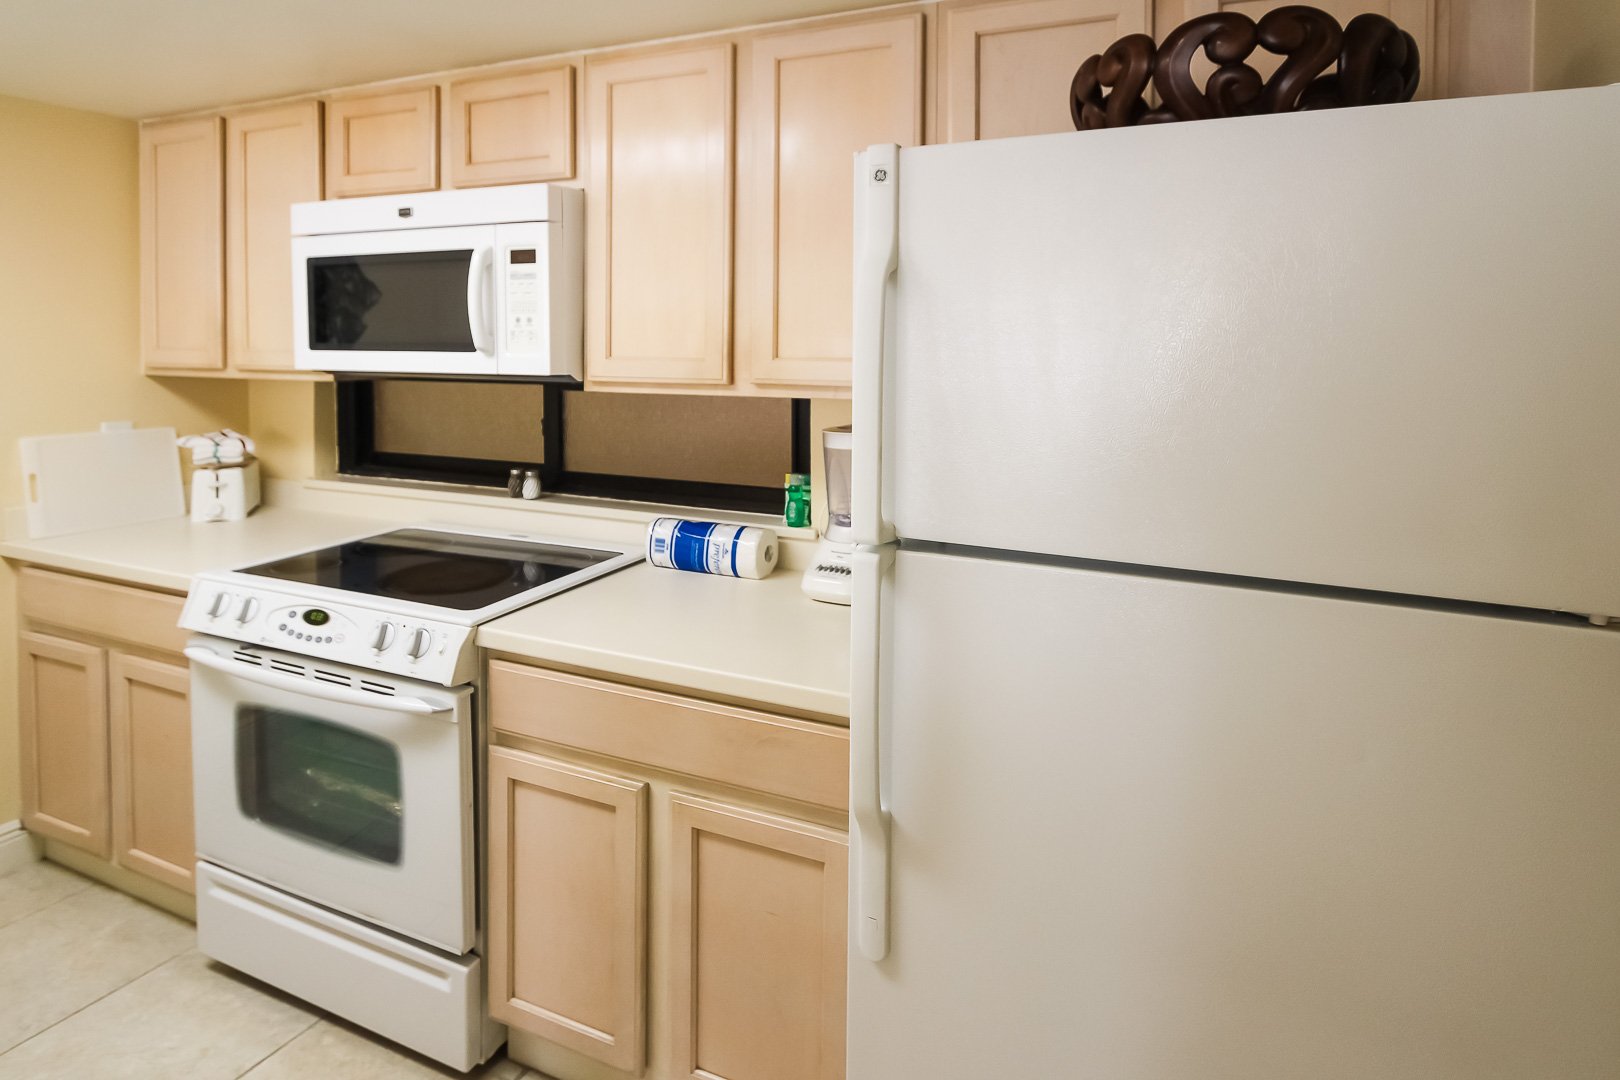 A fully equipped kitchen at VRI's Royale Beach Tennis Club in Texas.